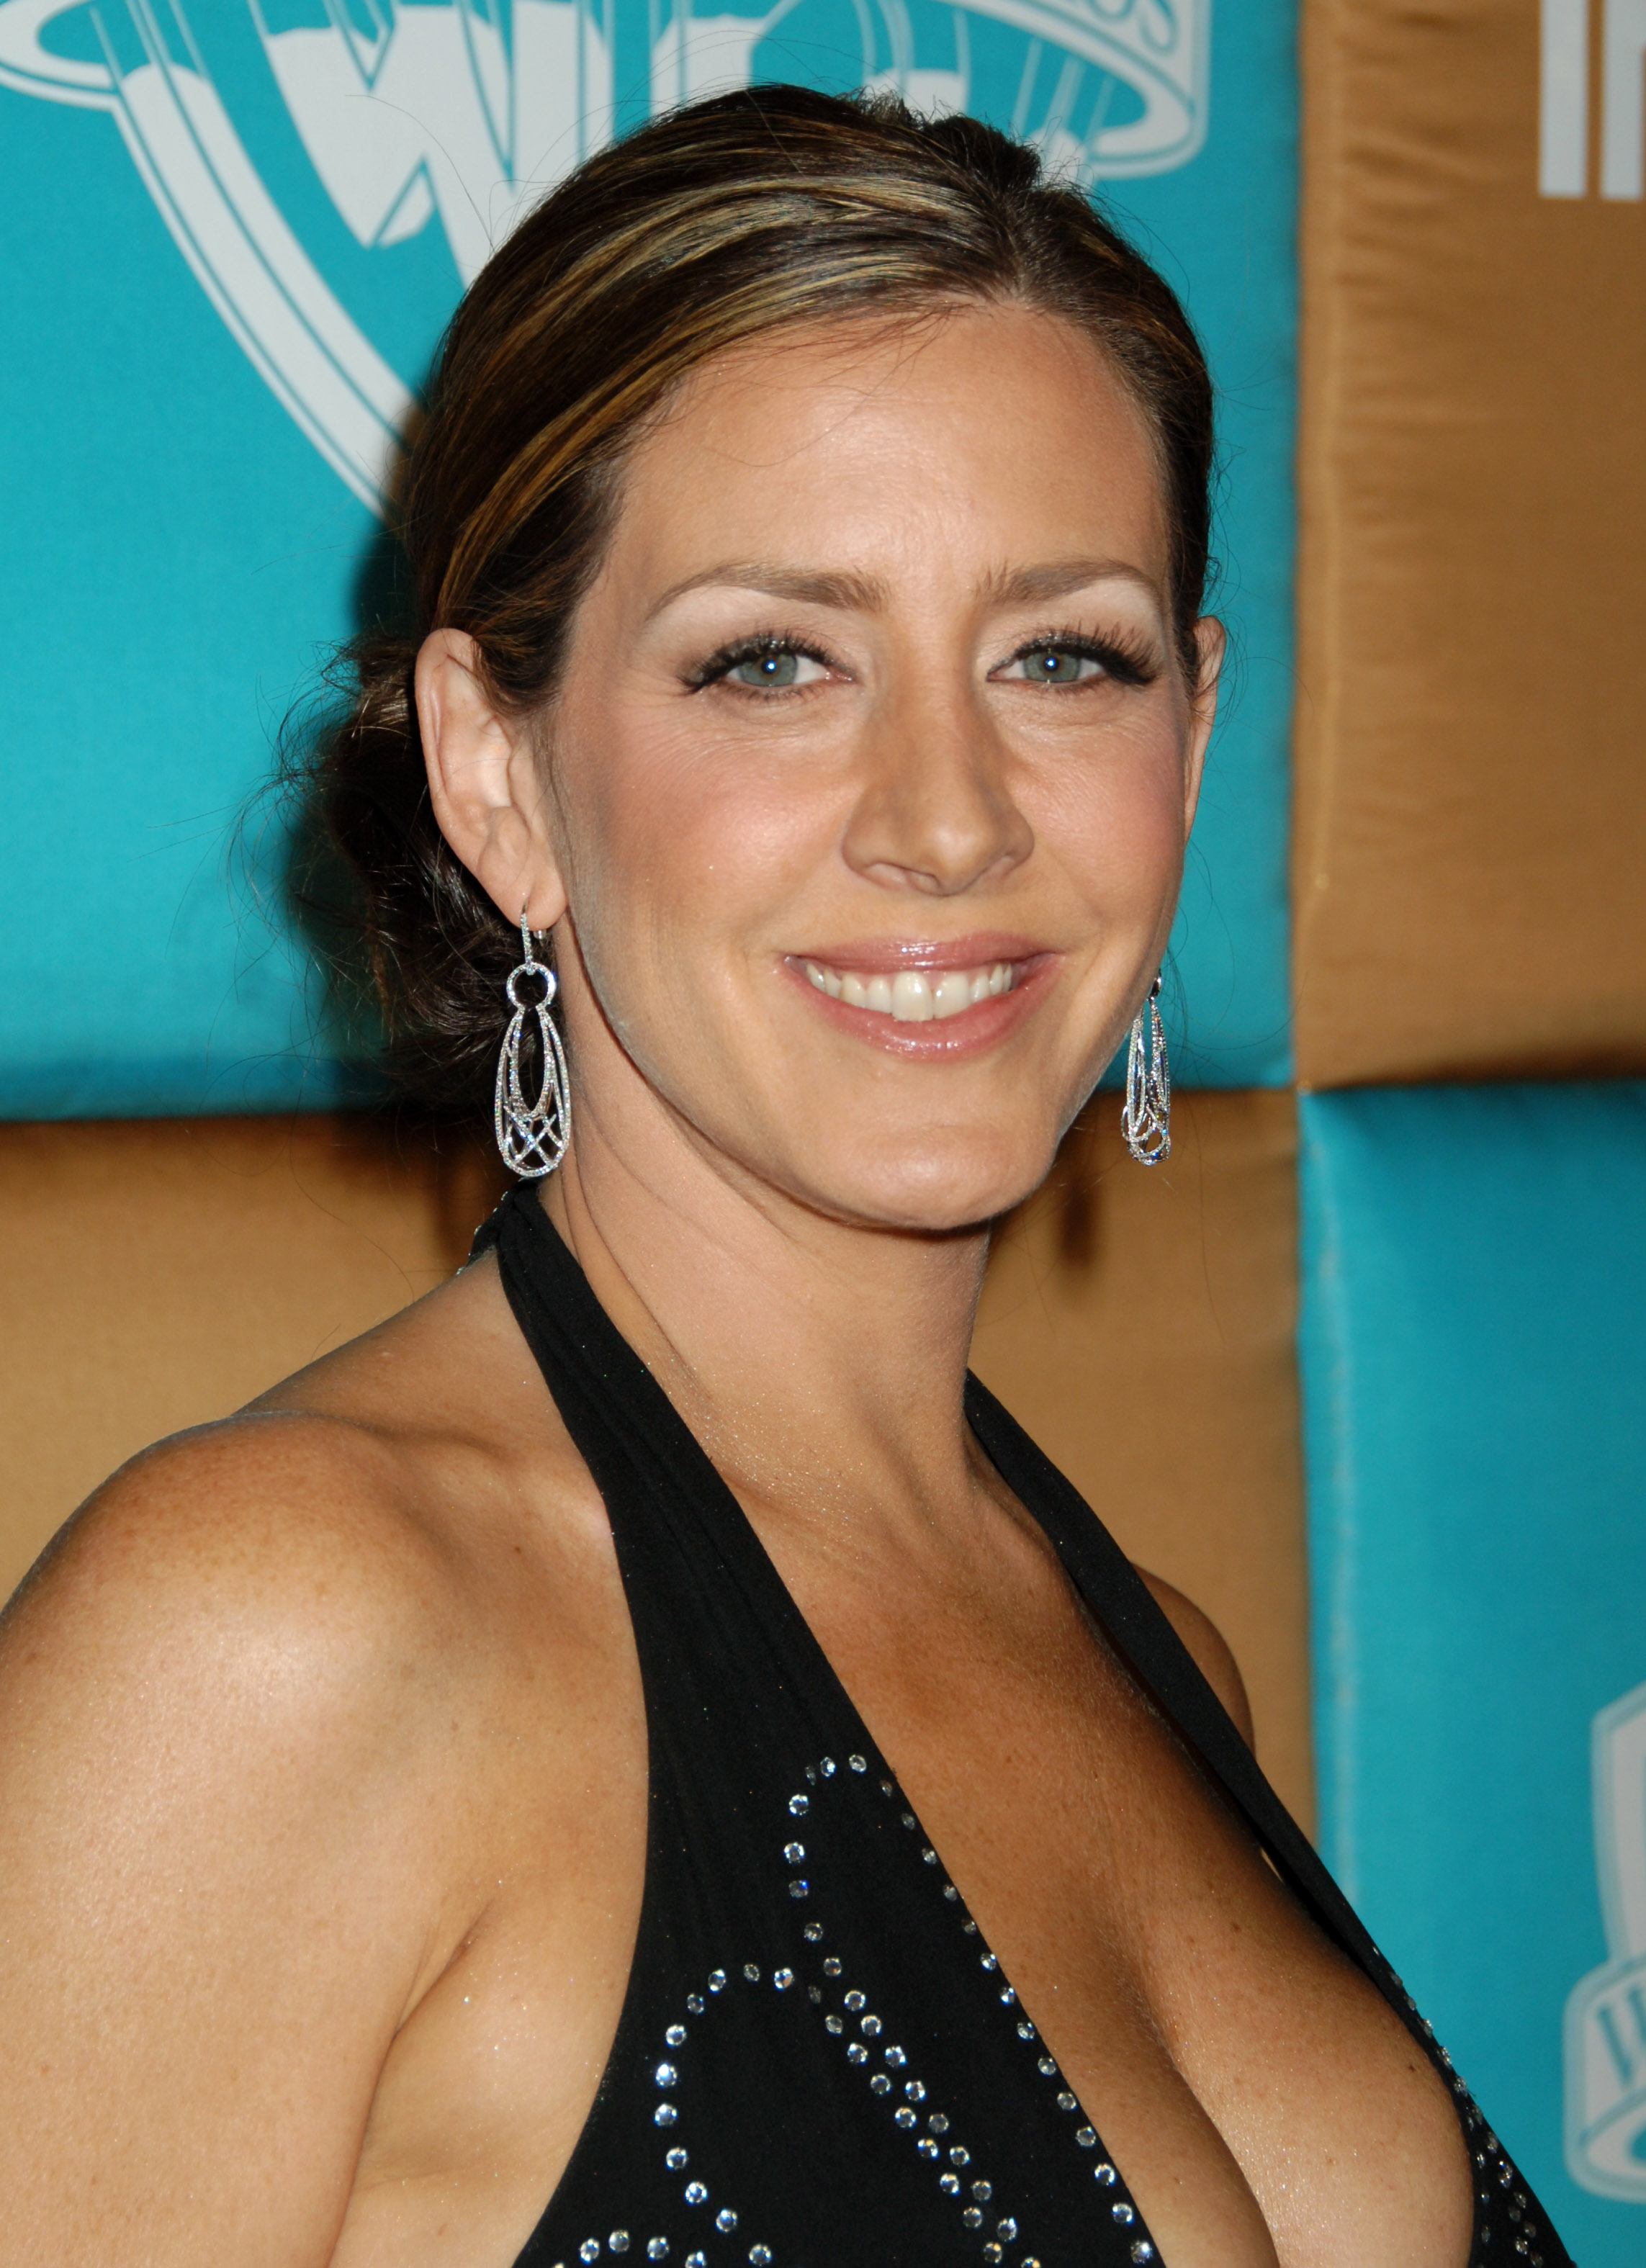 Apologise, joely fisher bikini not absolutely